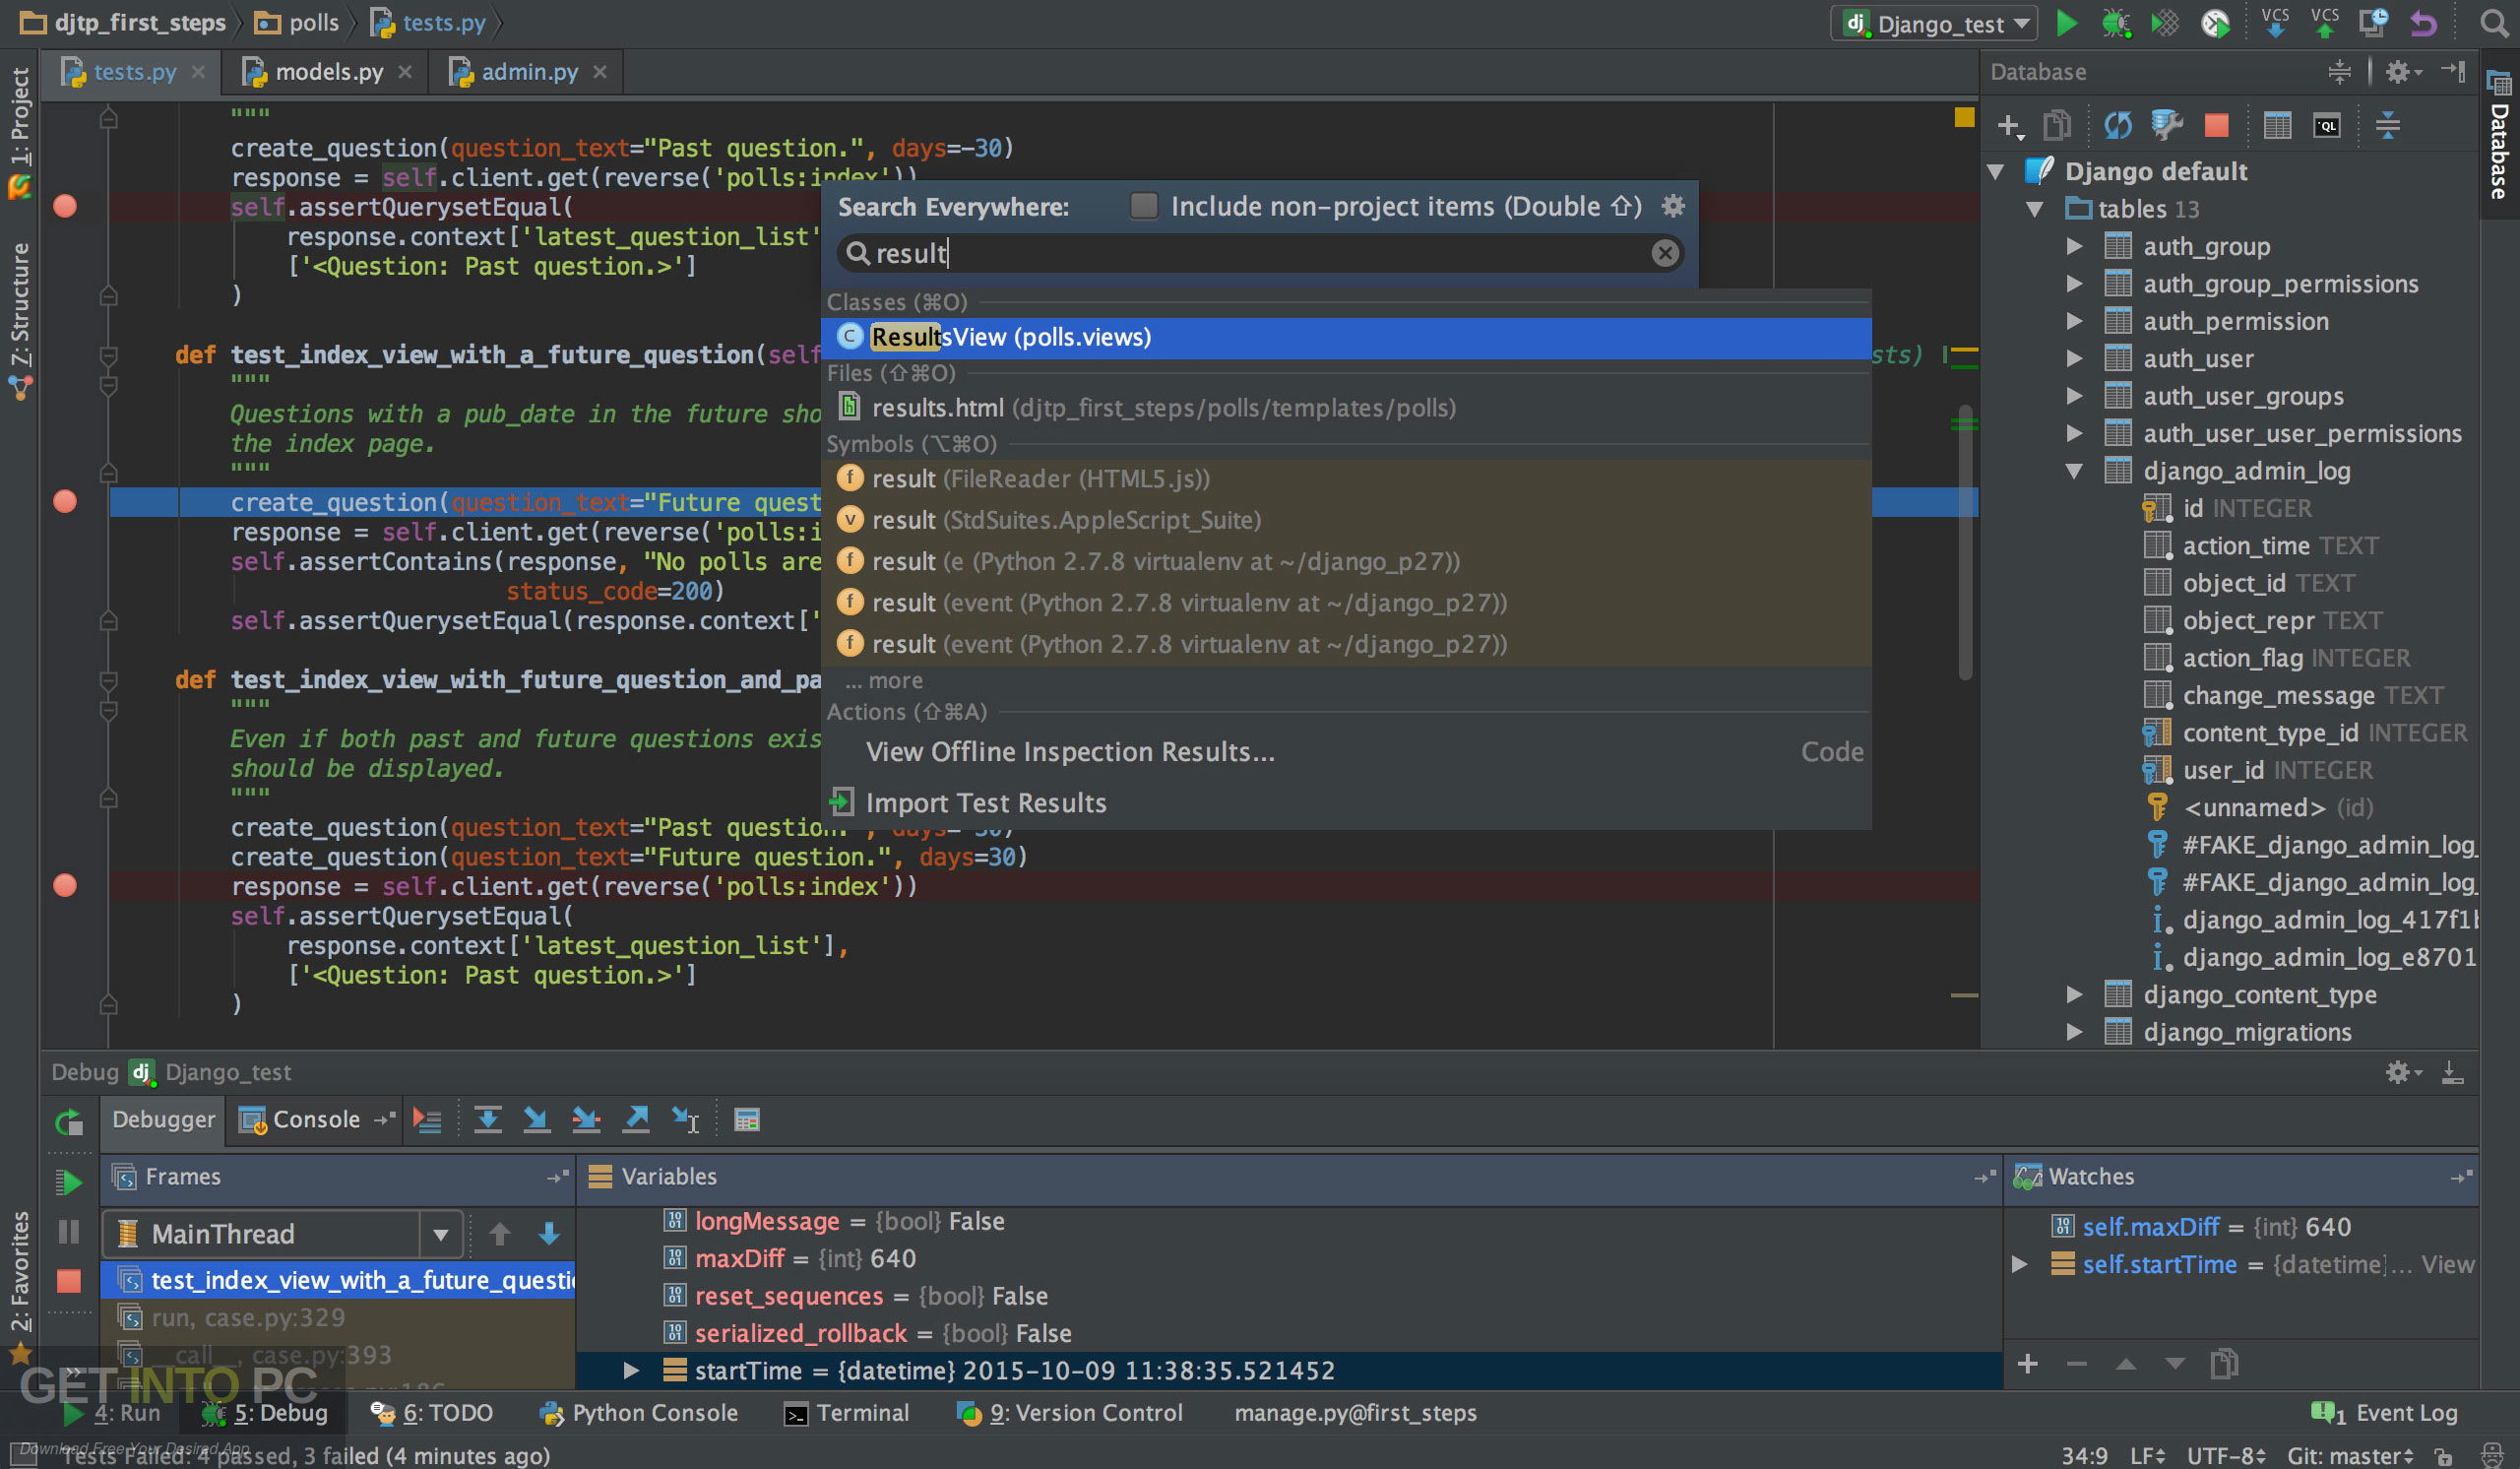 JetBrains PyCharm Pro 2018 for Linux Offline Installer Download-GetintoPC.com